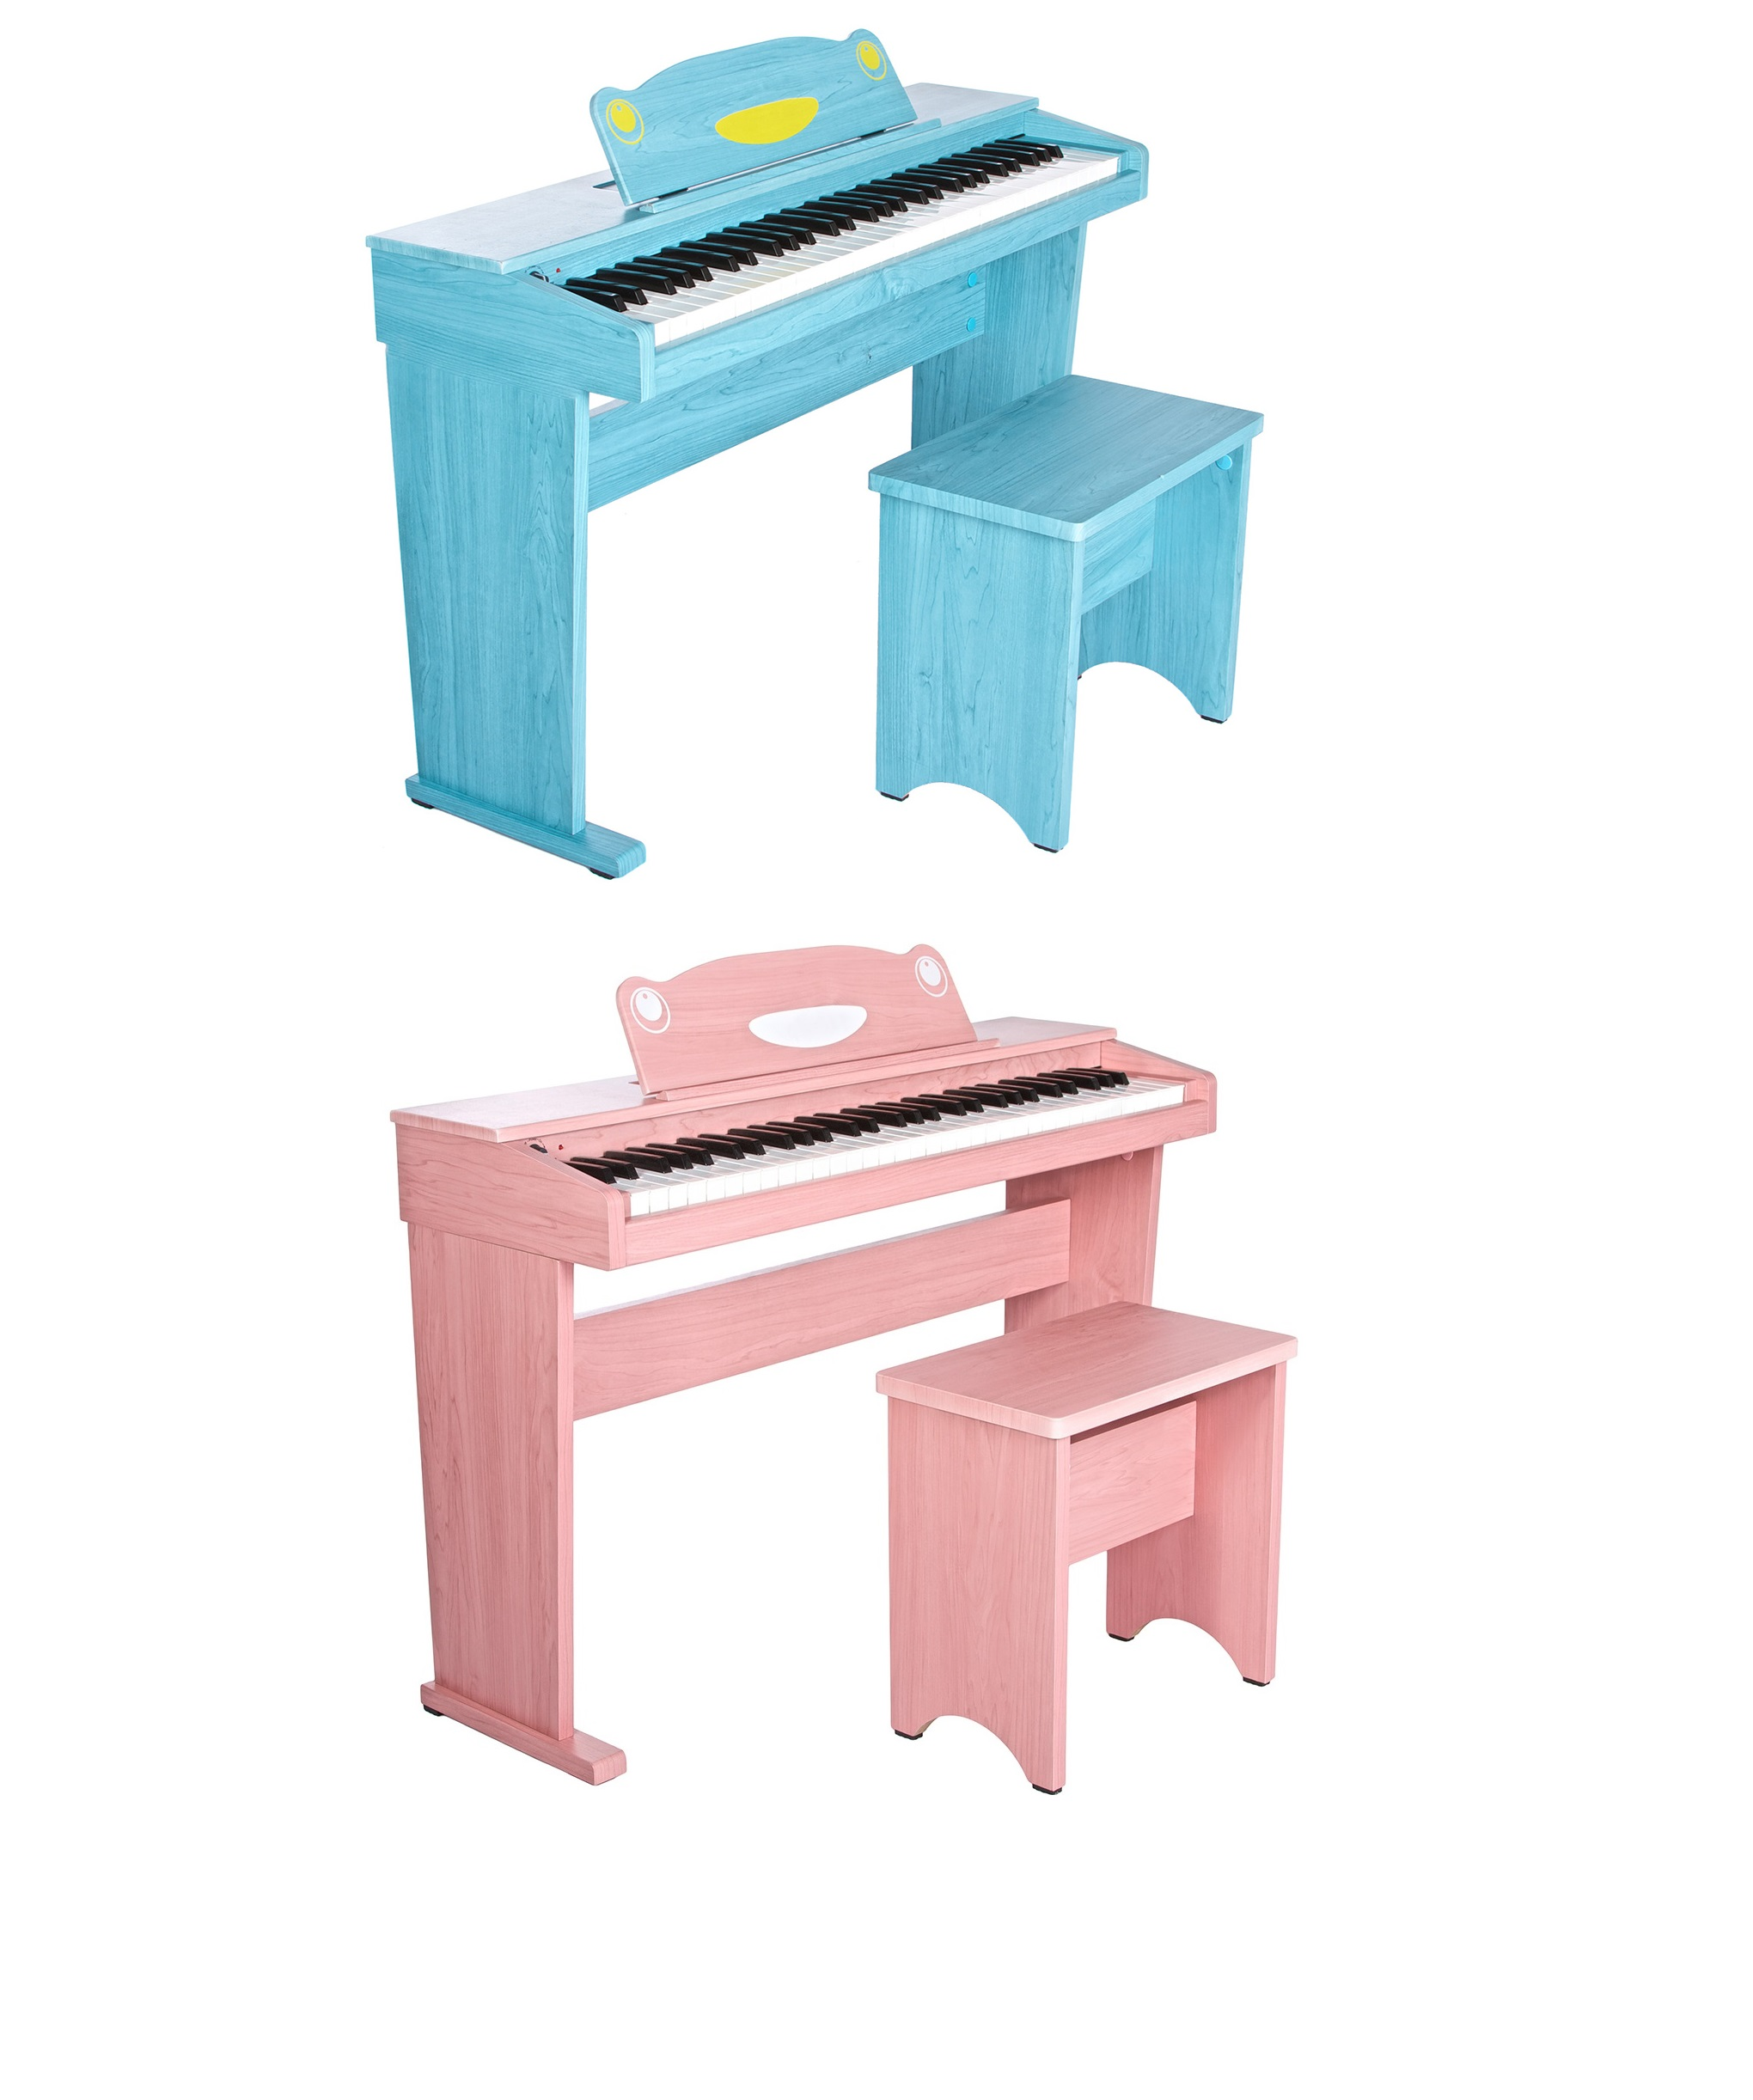 Artesia Children's Piano